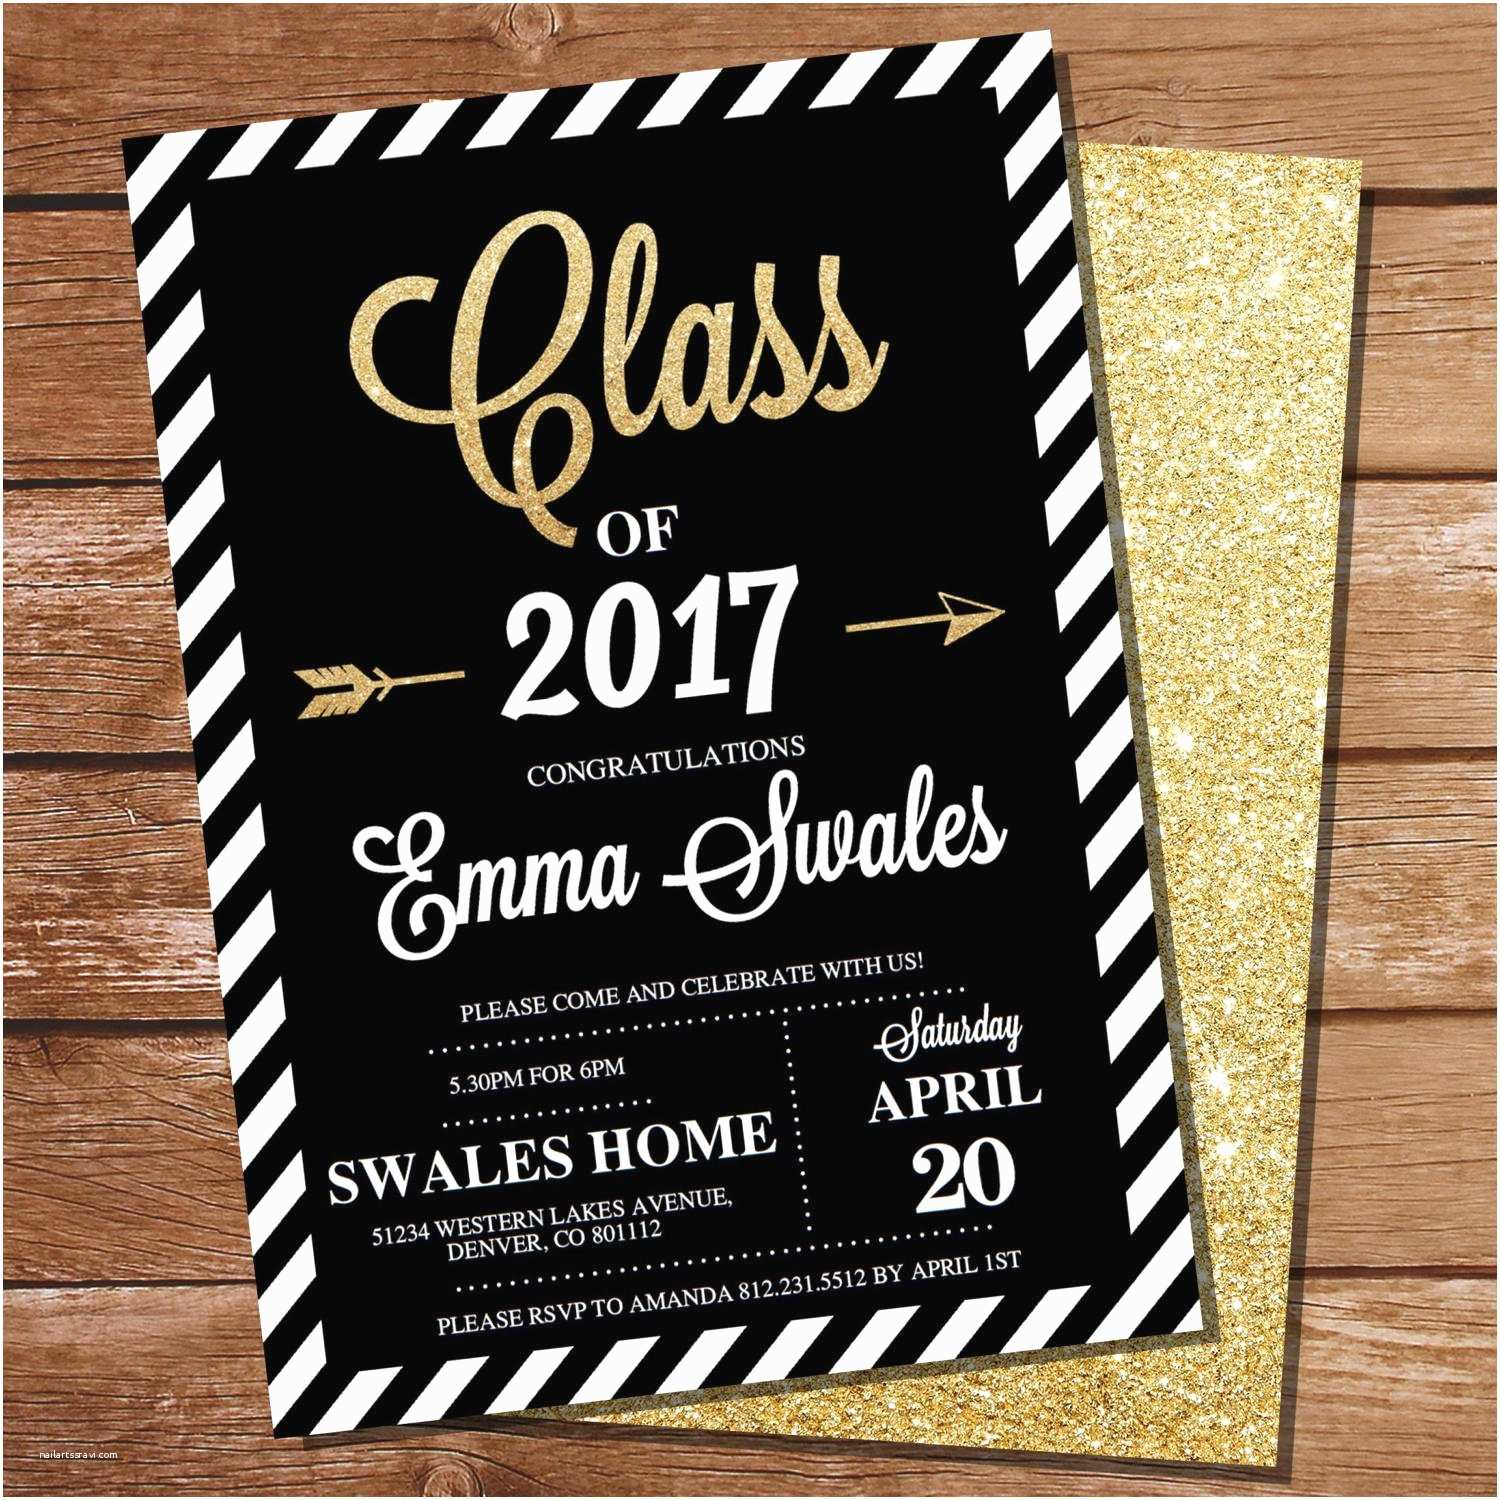 Custom Graduation Invitations Modern College Graduation Invitations